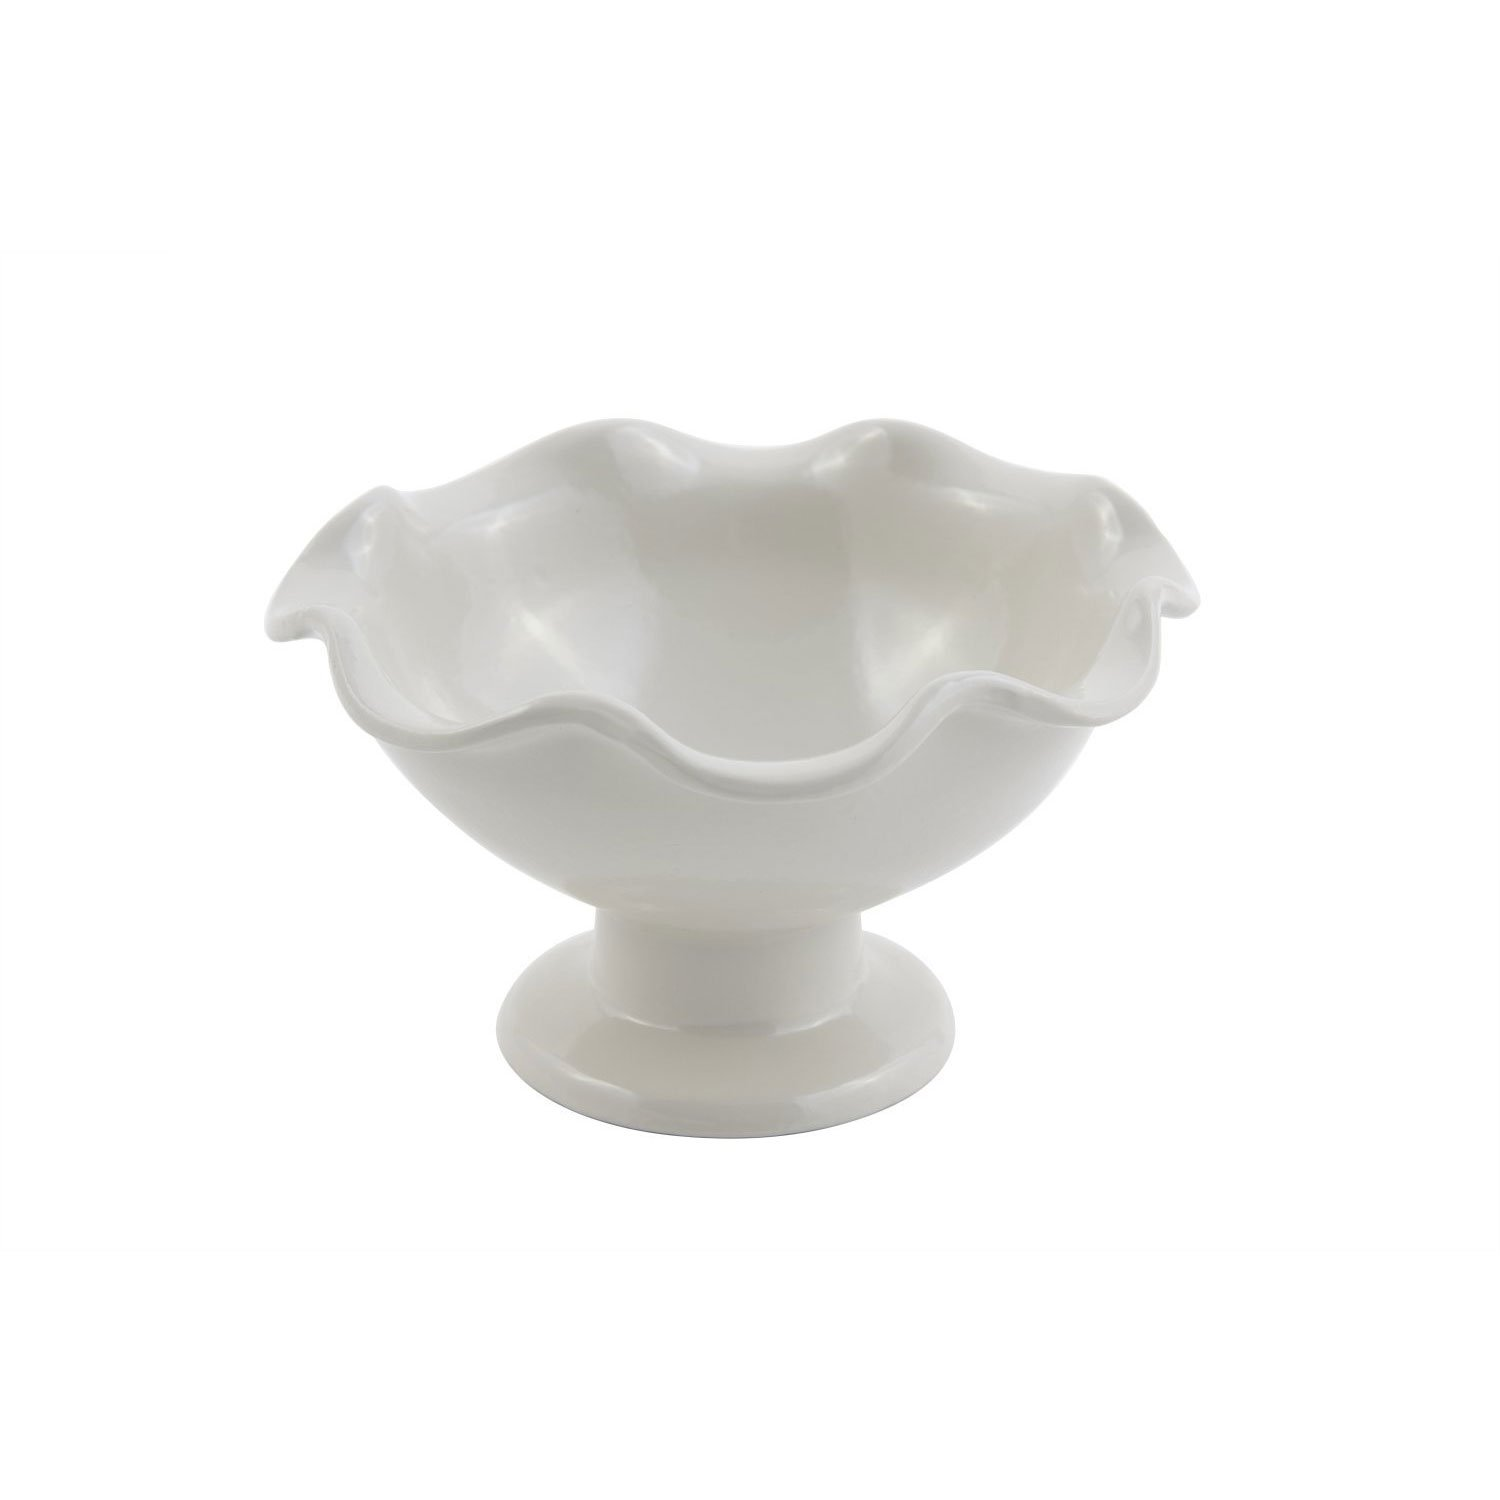 6 dia. x 3 3/8 inch Scalloped Pedestal Bowl Sandstone White